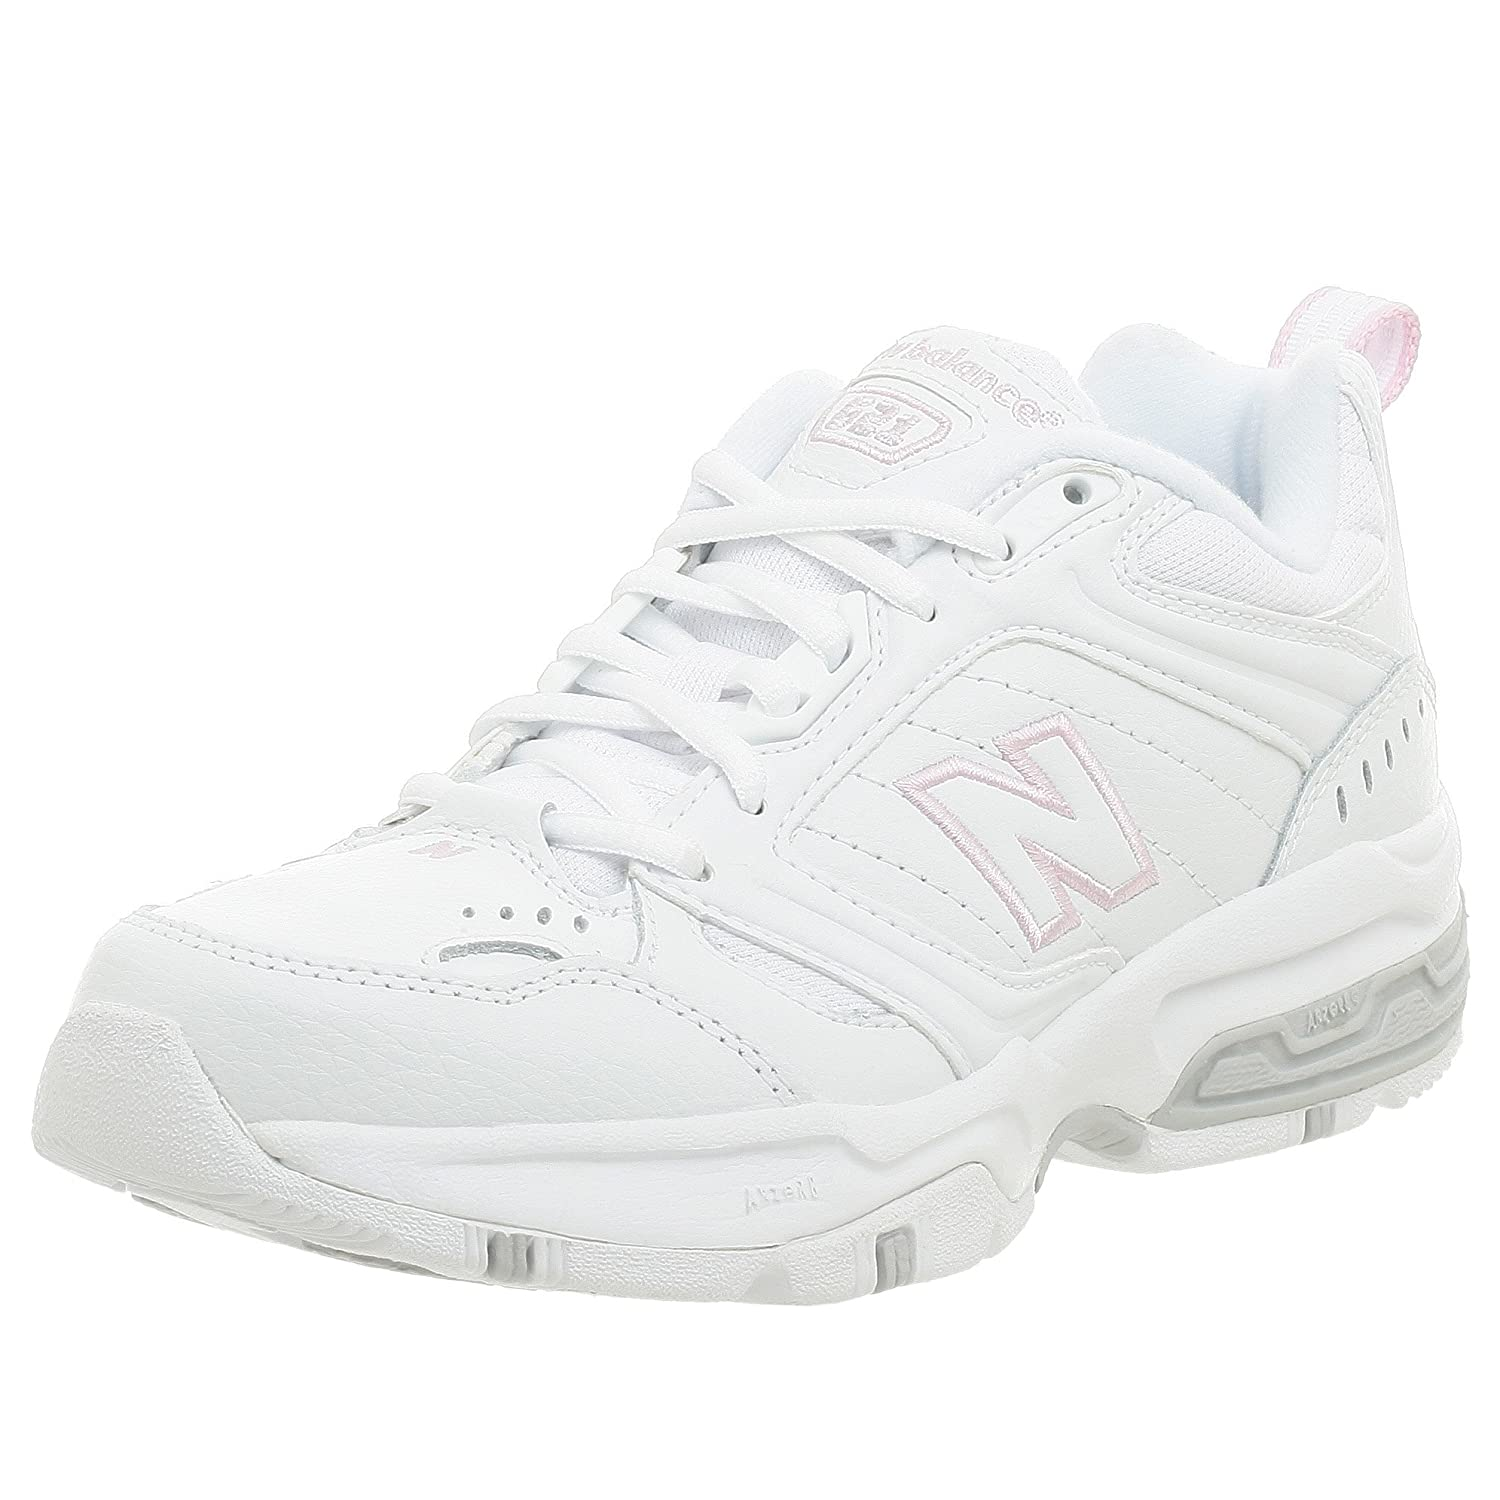 meilleure sélection 867c7 4659c New Balance 621 Womens White Narrow Leather Sneakers Shoes ...